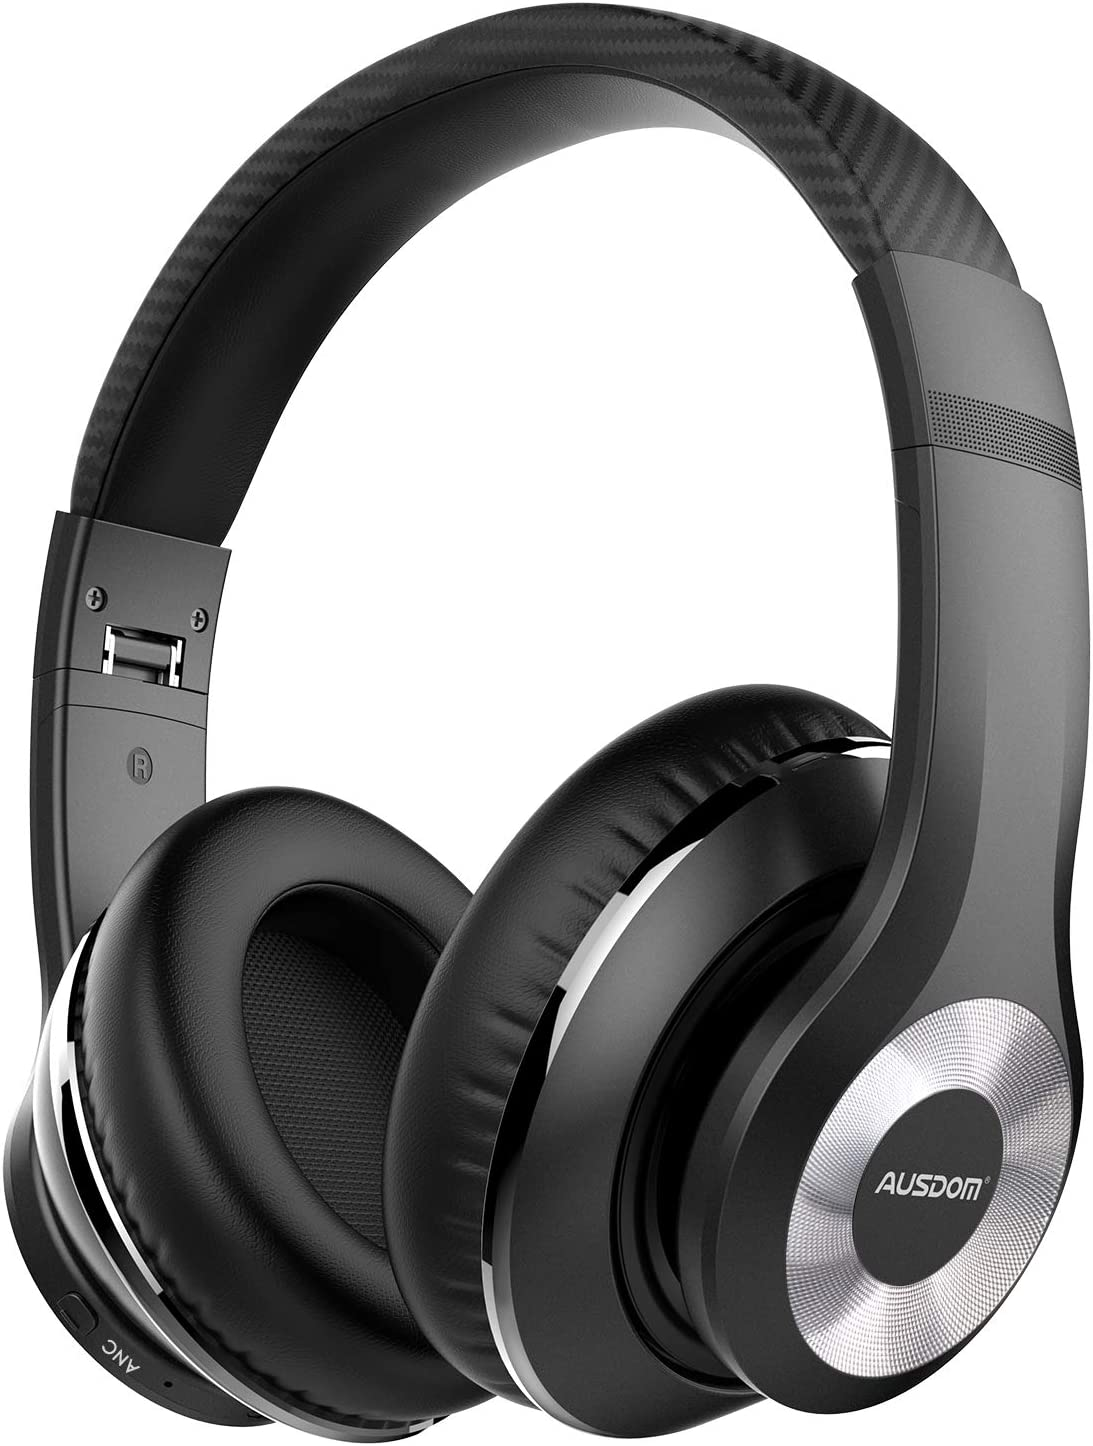 AUSDOM ANC10 Wireless Active Noise Cancelling Headphones, Bluetooth 5.0 Over Ear Headphones with Mic, Soft Foldable Earpads, Hi-Fi Deep Bass Headset for Travel Work TV PC Mobile Airplane-Black